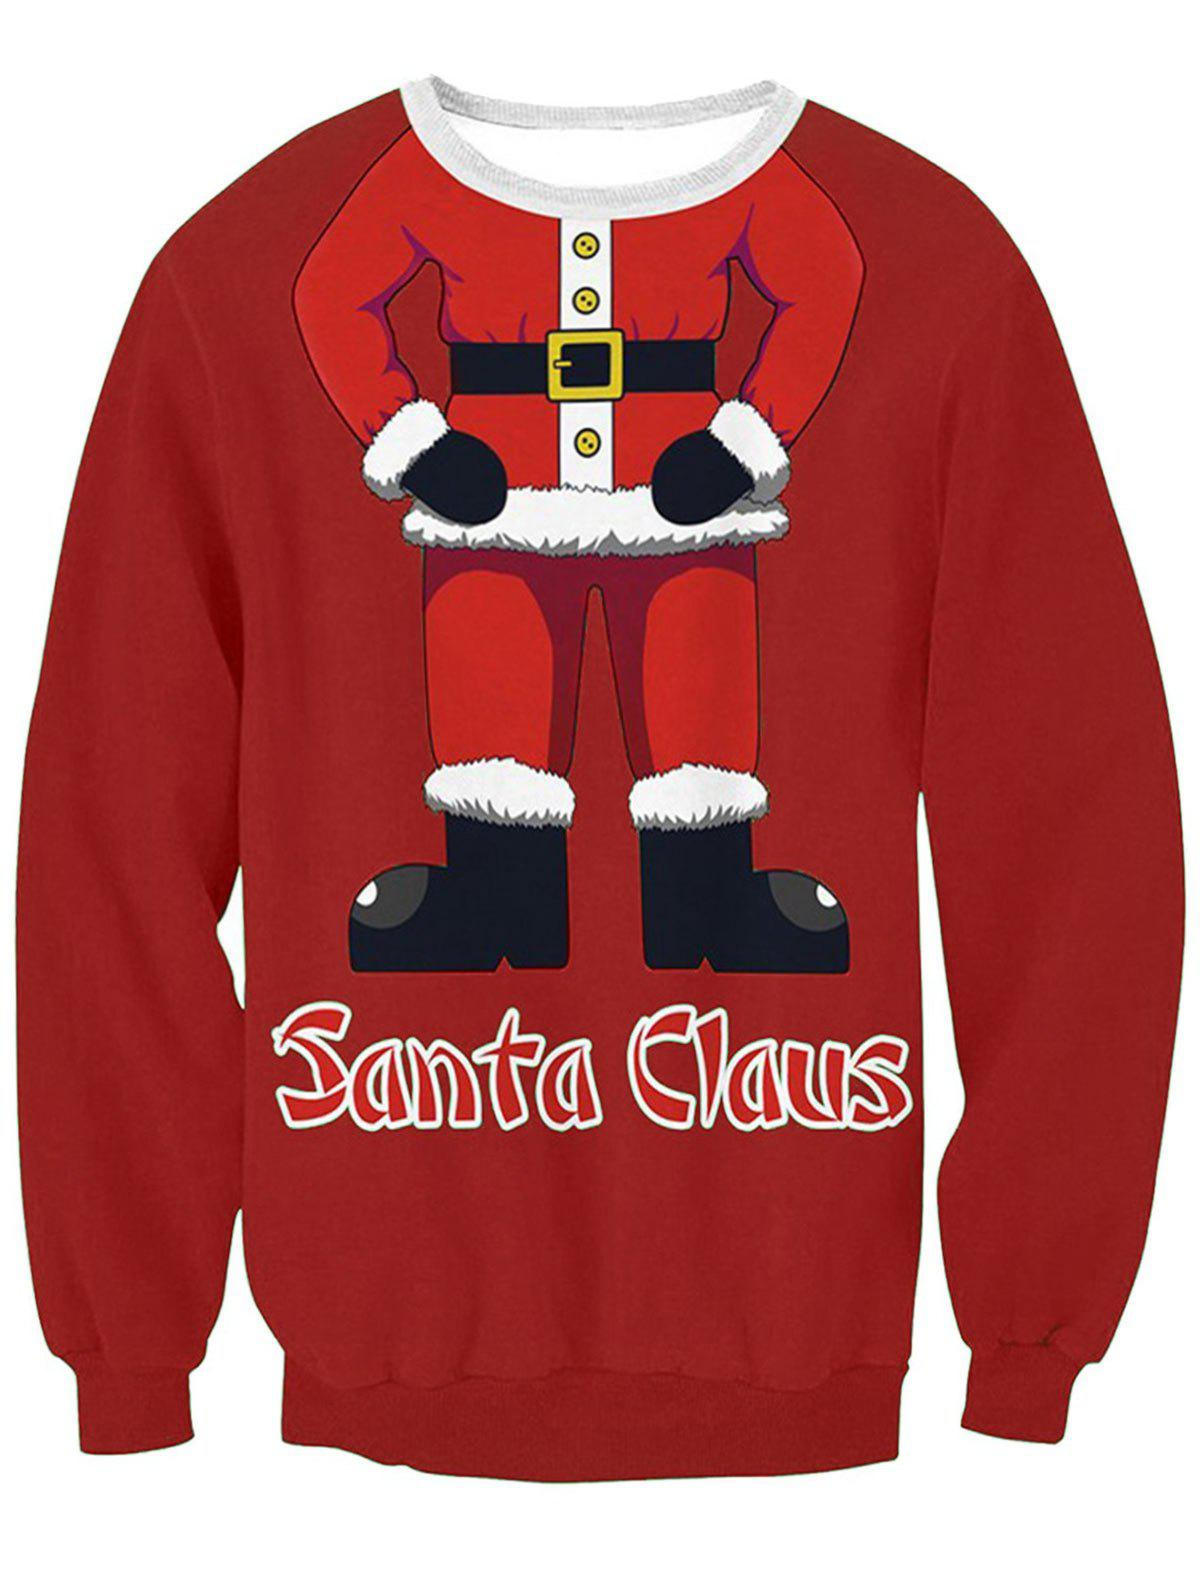 Hot Santa Claus Body Print Pullover Sweatshirt